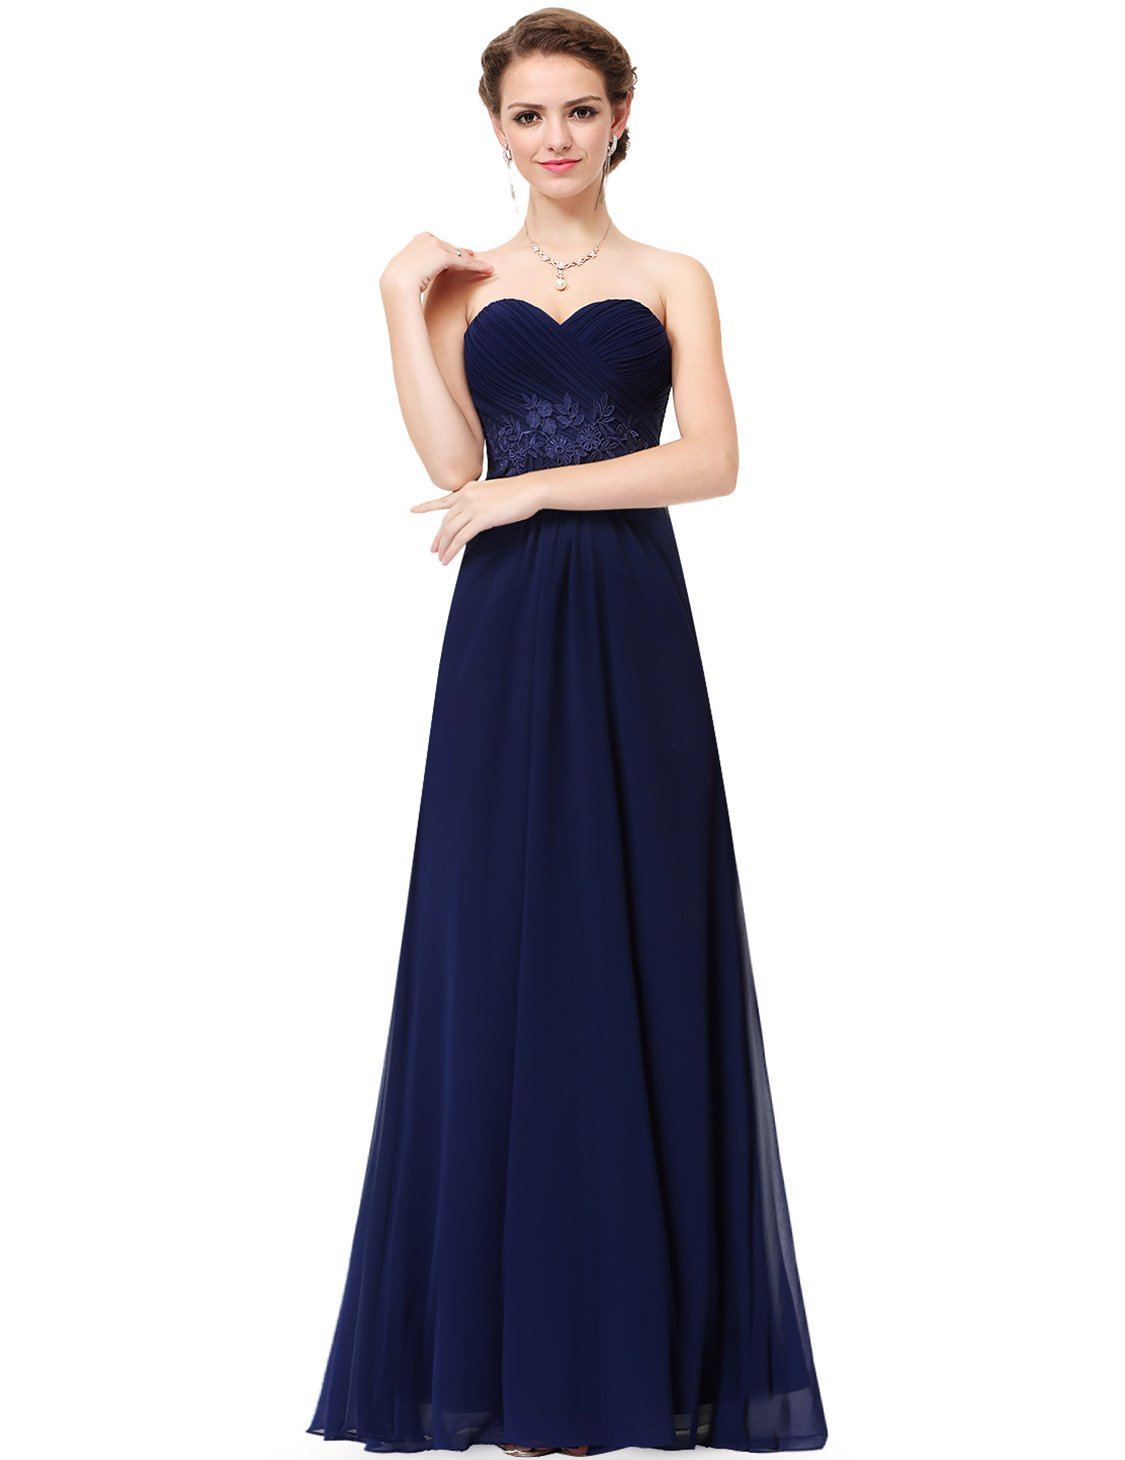 Ever-Pretty Womens Floor Length Empire Lace Waist Corset Style Prom Dress 10 US Navy Blue